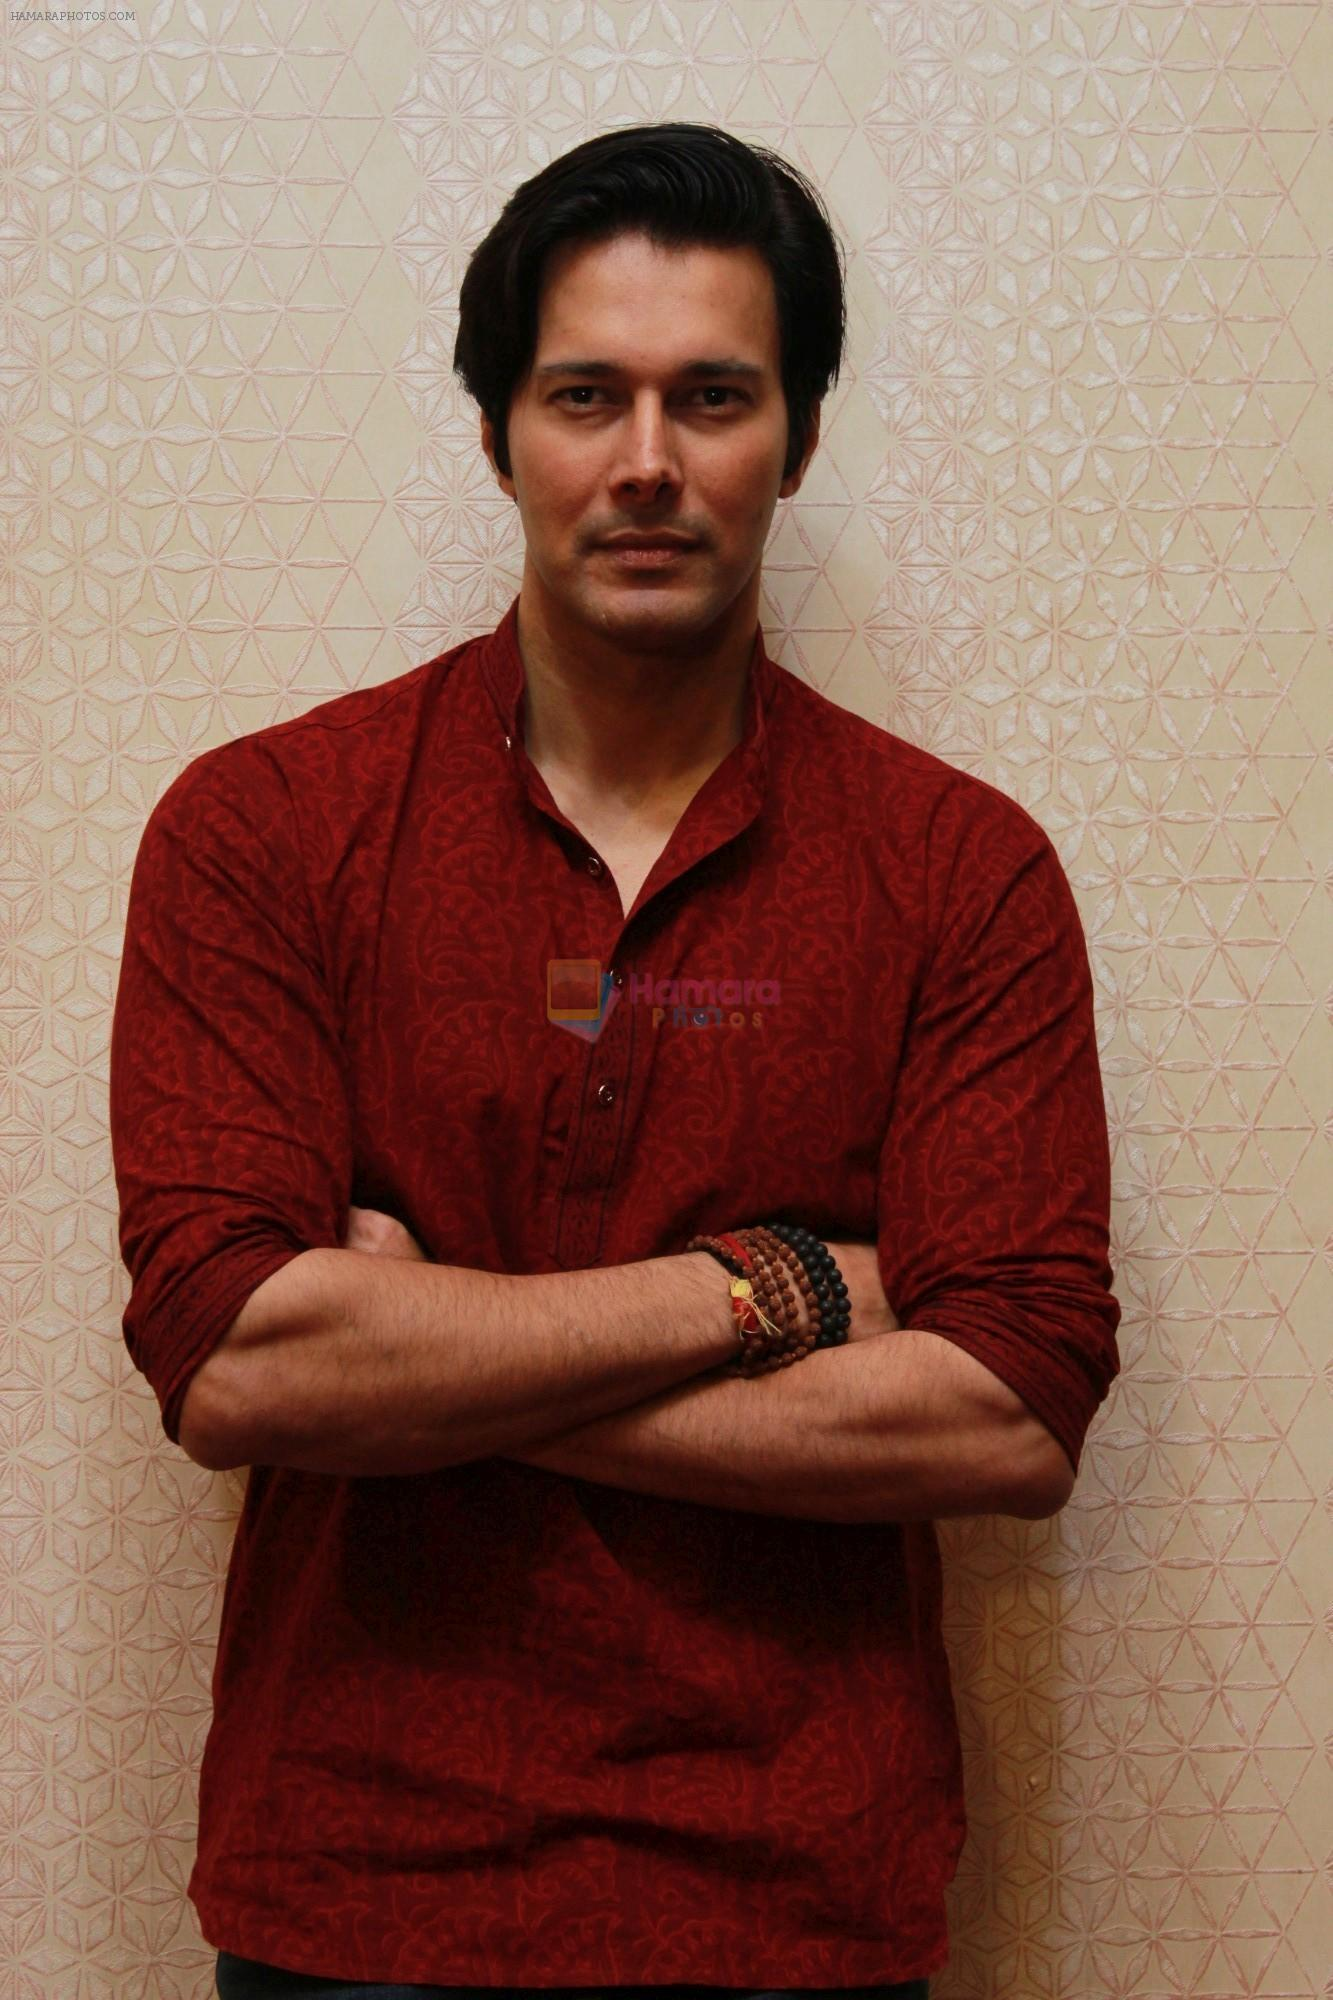 Rajneesh Duggall at the promotions of Film Mushkil - Fear Behind on 6th Aug 2019